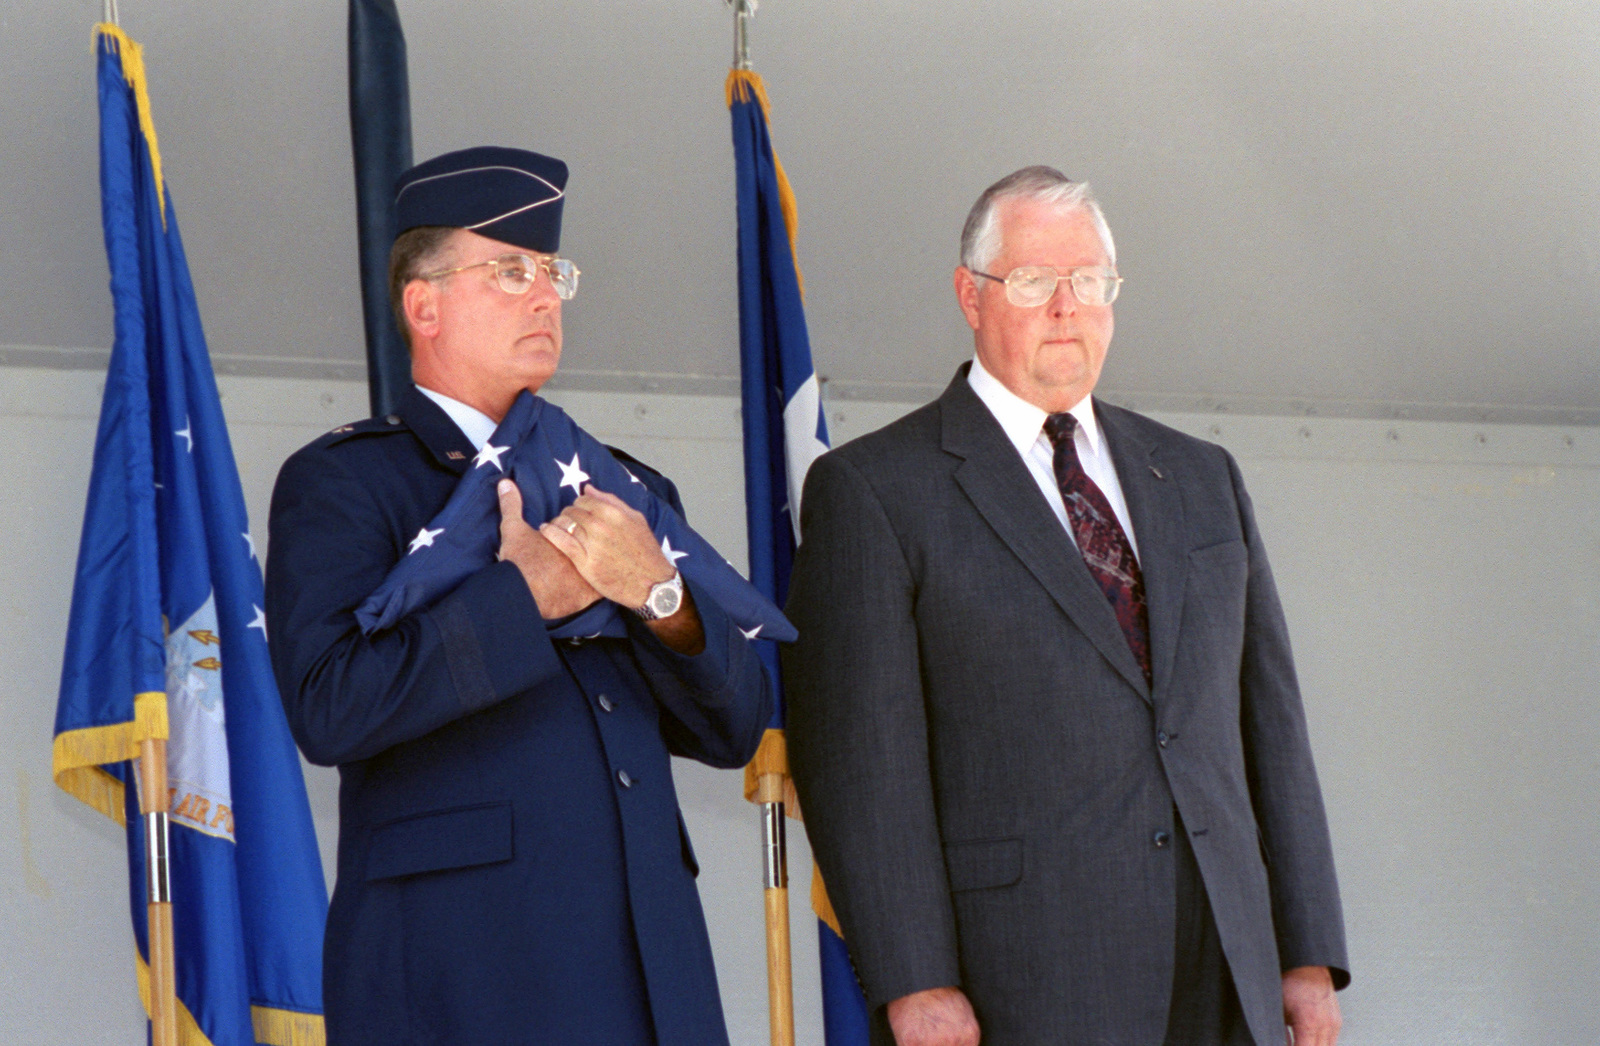 Brigadier General (BGEN) Robert Murdock, USAF, San Antonio - Air Logistics Center (SA-ALC) Commander, holds the last American flag to fly over Kelly AFB, and Tommy Jordan Executive Director SA-ALC stands on his left, during the closing ceremonies. Although the closing ceremony is in history books, government officials still actually own Kelly property and will until federal and state environmental regulators okay remedies for the installation's 30 sites that need environmental clean-up, according to federal law provisions